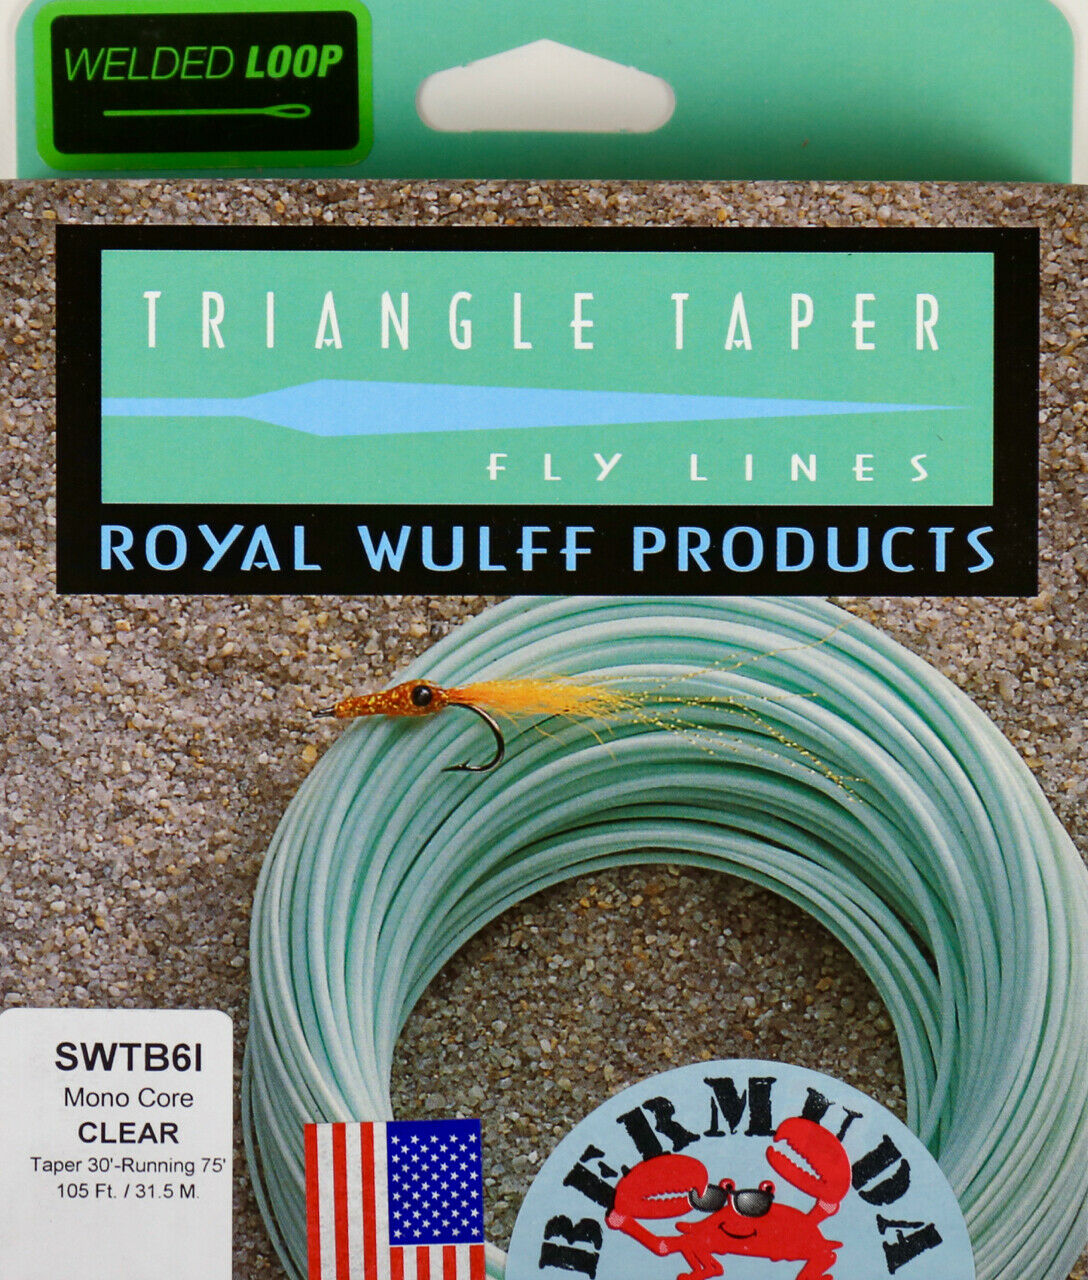 Royal Wulff Bermuda Triangle Taper Saltwater Intermediate 8 WT Fly Line SWTB8I